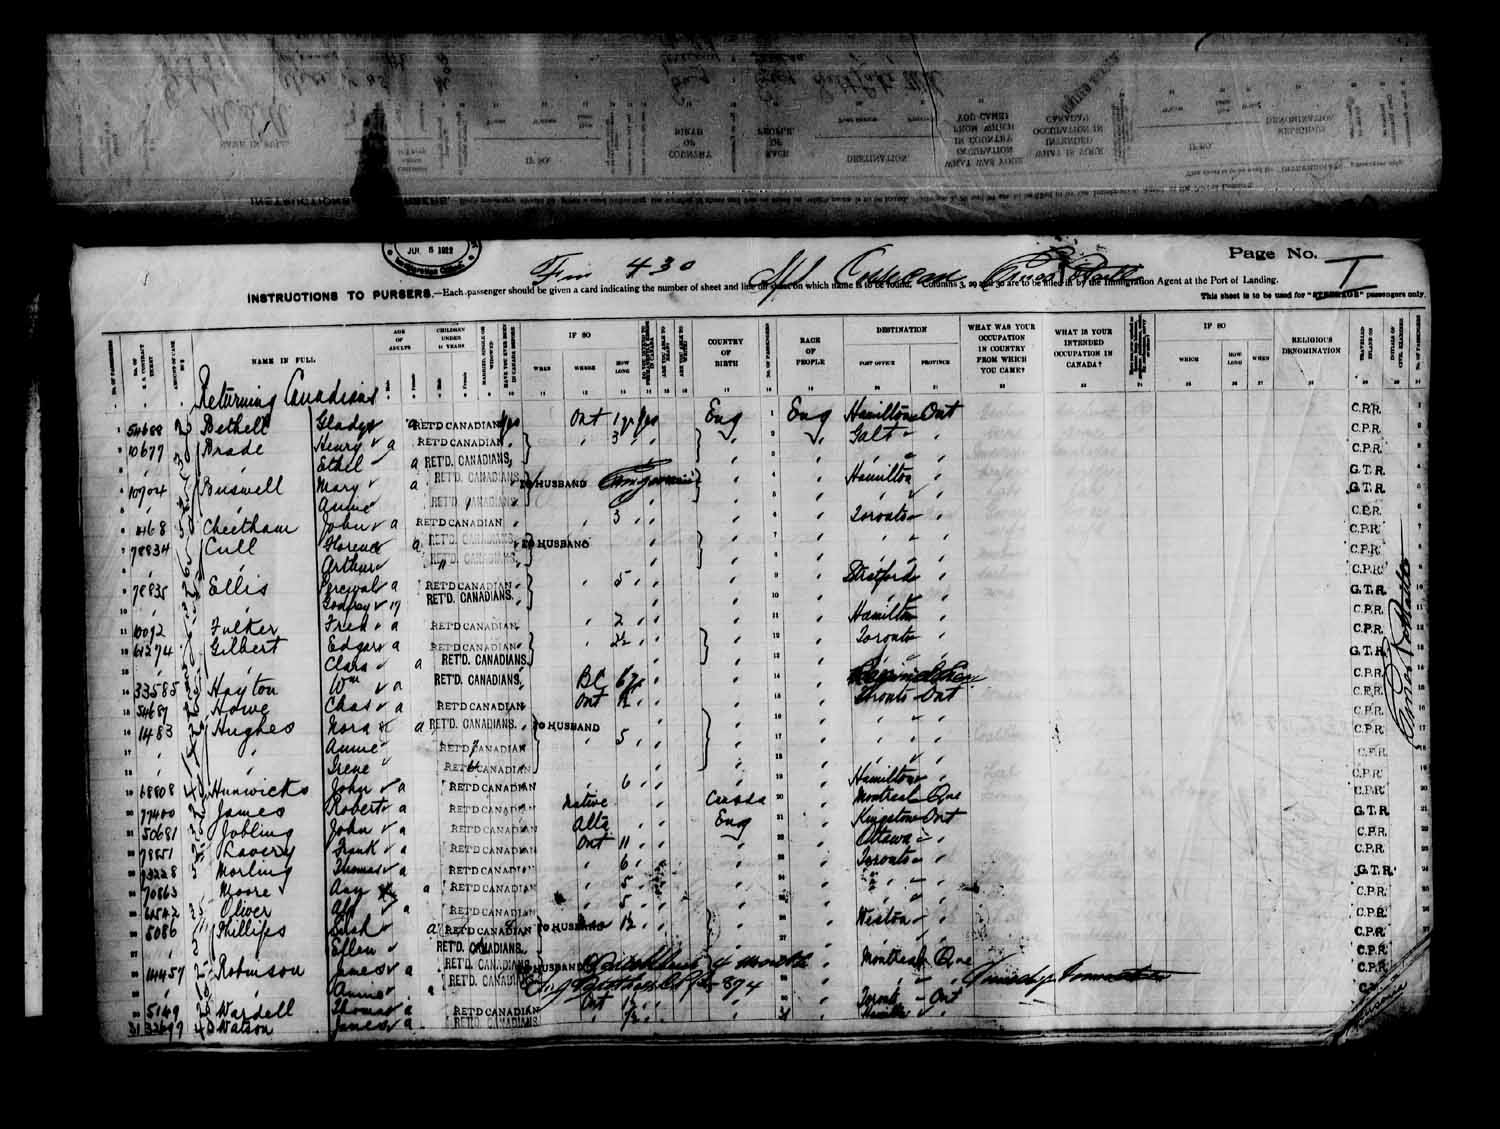 Item: Passenger lists of the CORSICAN arriving in Quebec, Que  and